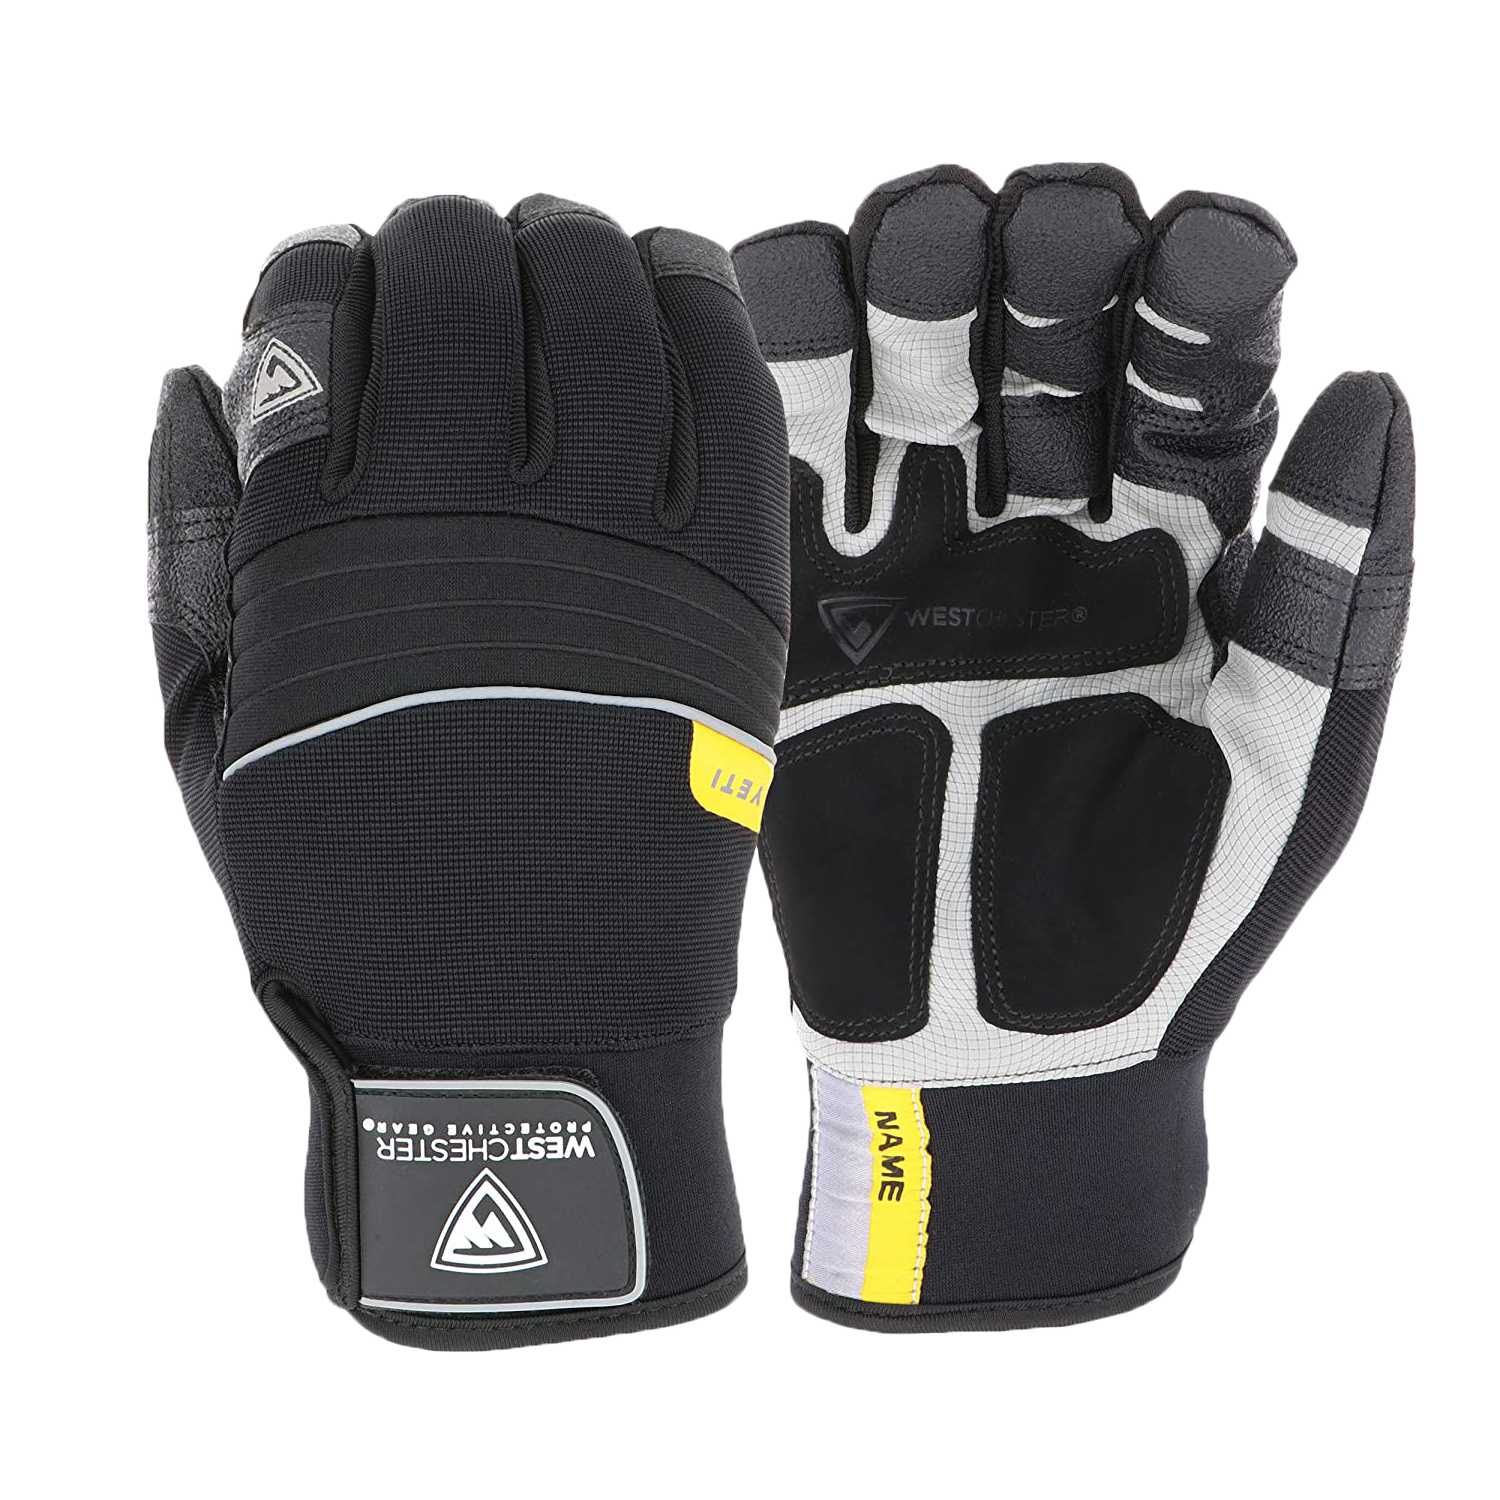 West Chester Yeti Waterproof Winter Gloves - Top Choice